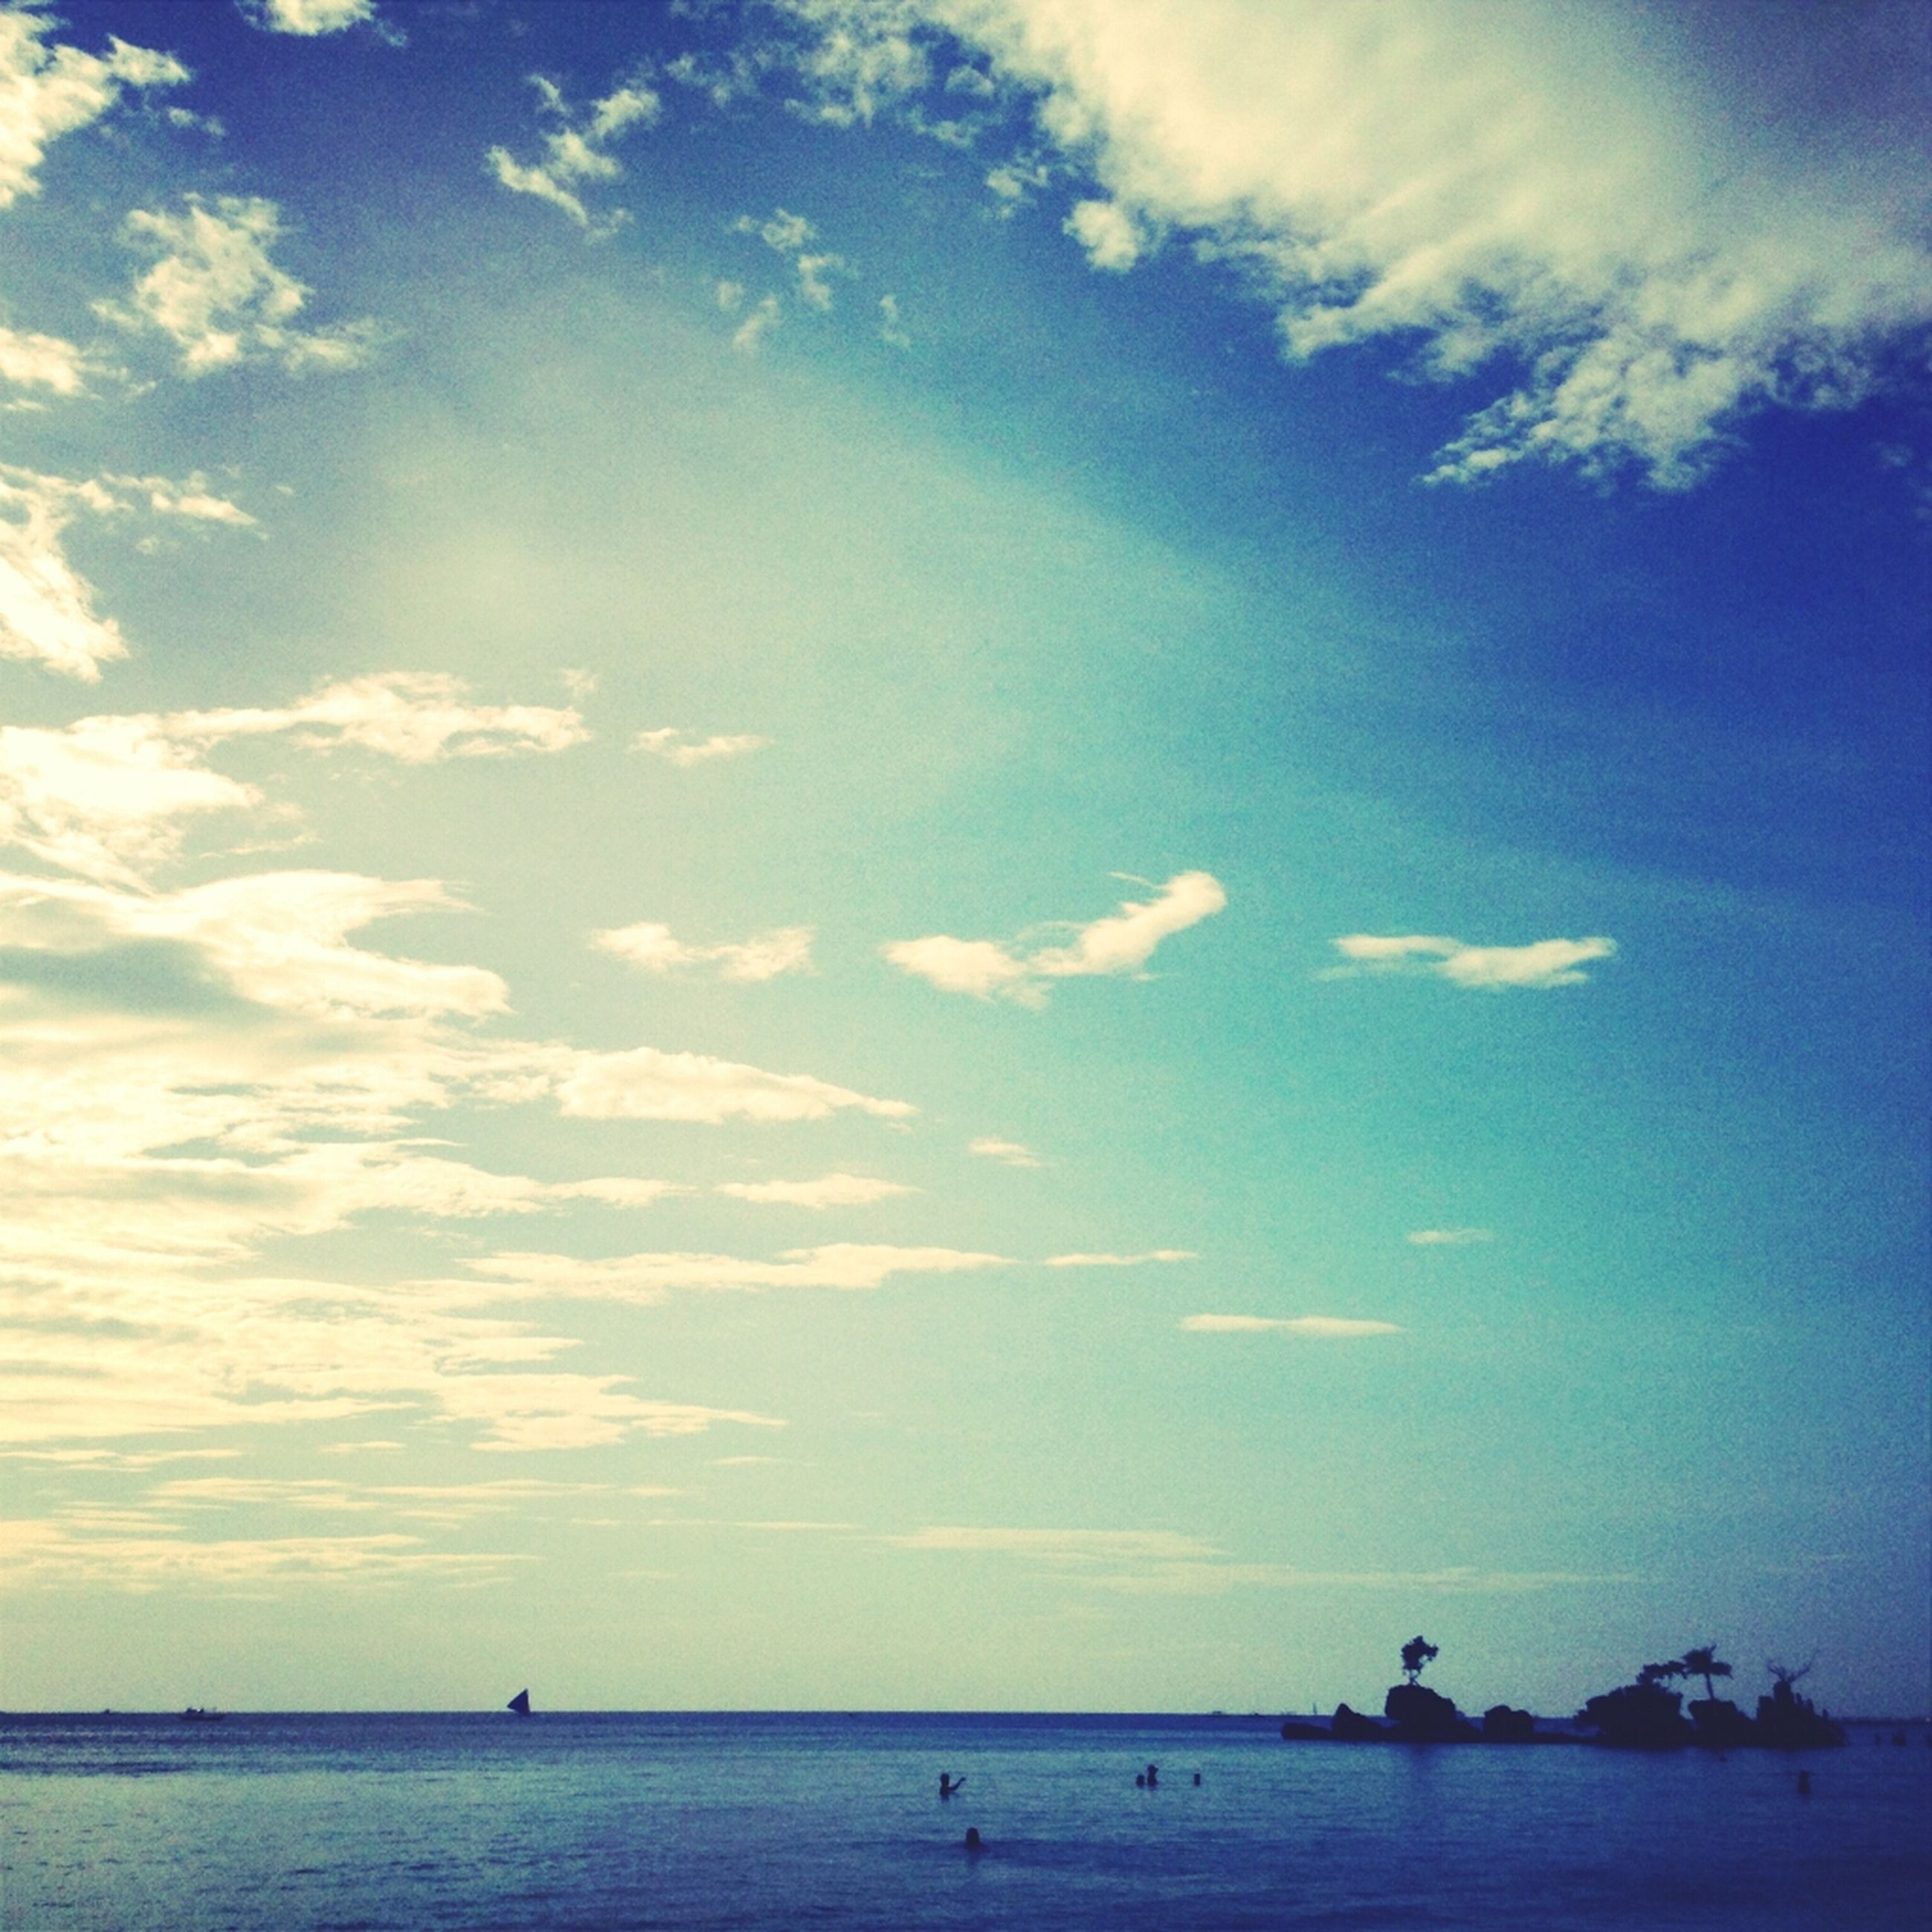 sea, water, sky, horizon over water, scenics, tranquility, tranquil scene, cloud - sky, waterfront, beauty in nature, blue, nature, silhouette, cloud, idyllic, nautical vessel, beach, cloudy, incidental people, outdoors